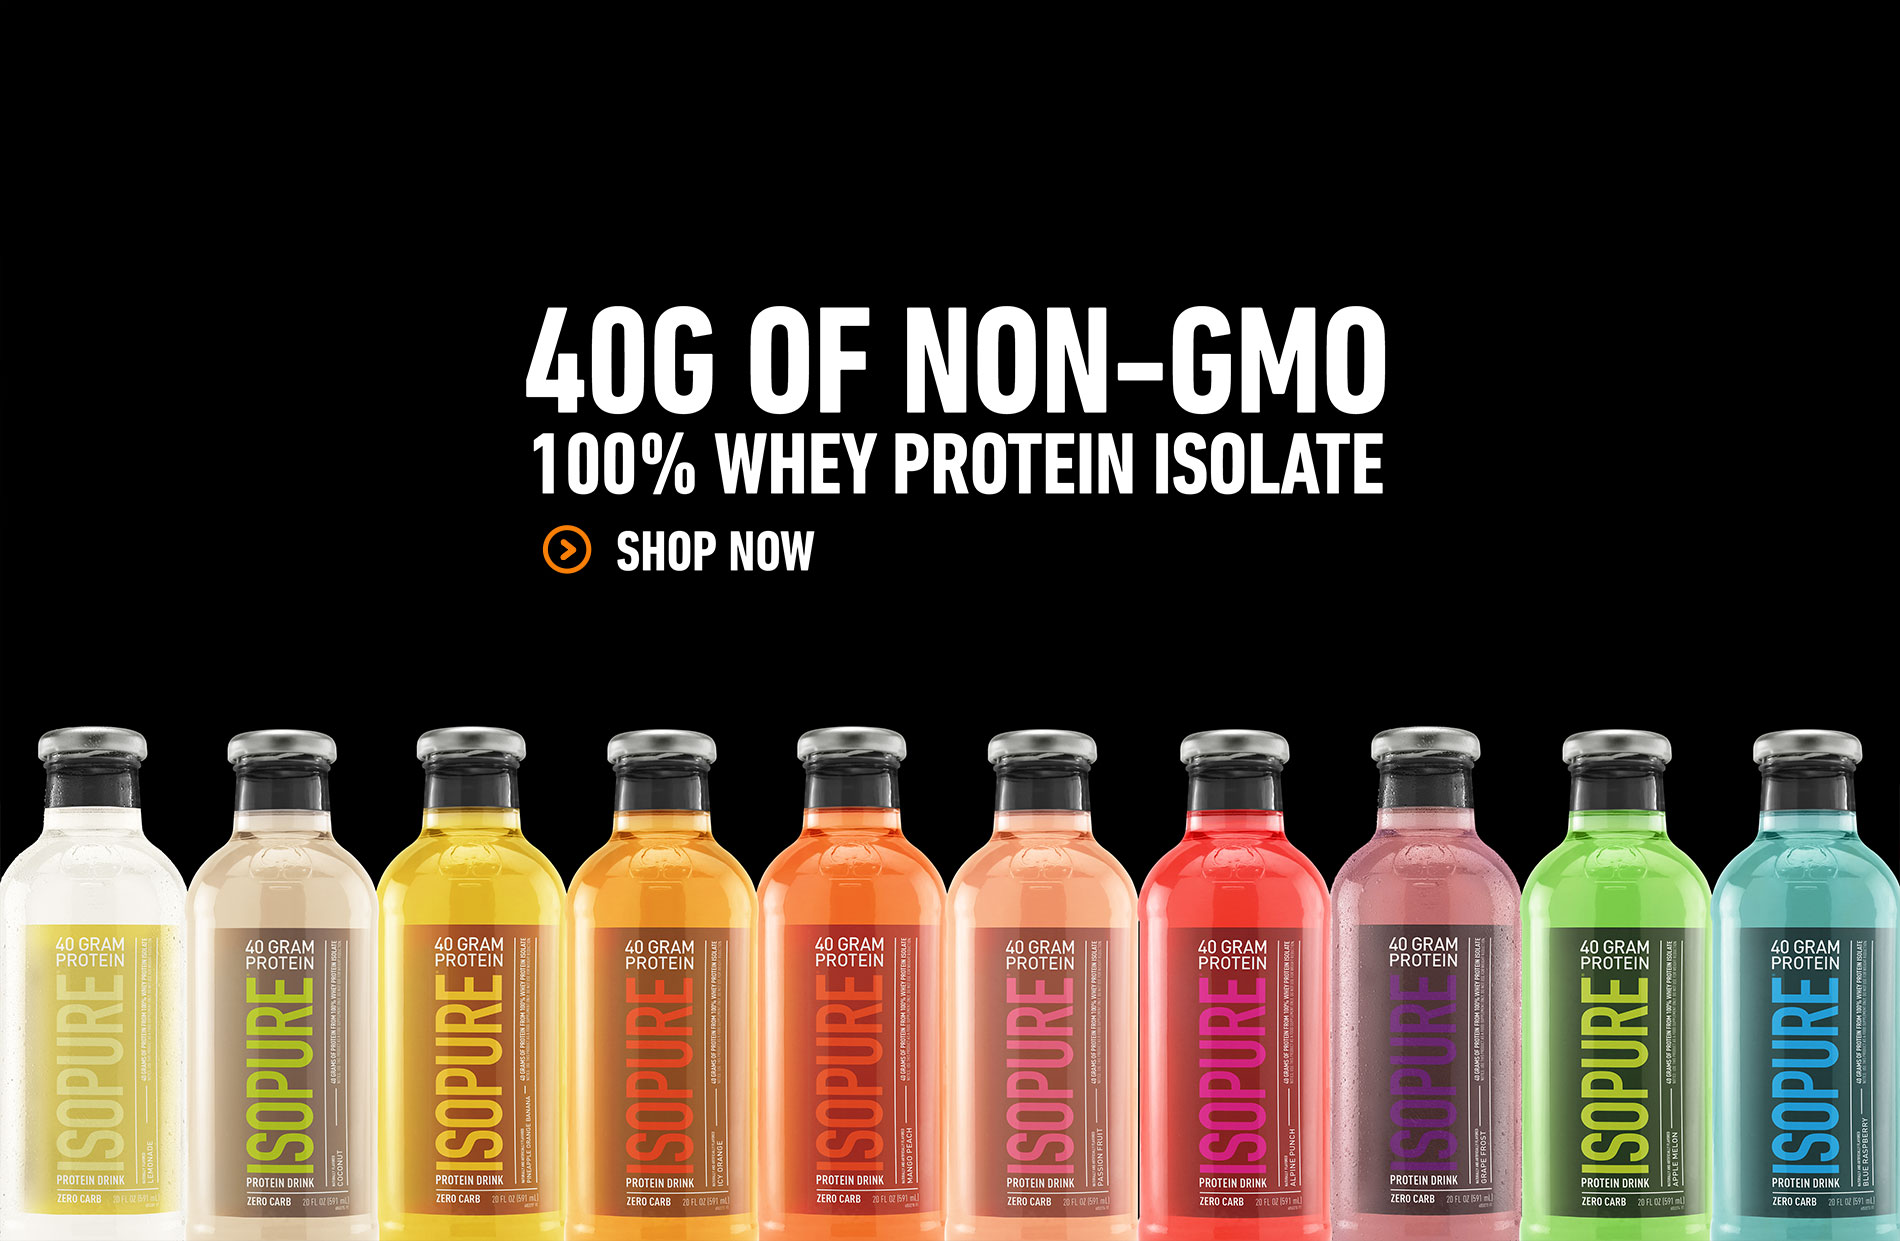 40G OF NON-GMO 100% WHEY PROTEIN ISOLATE